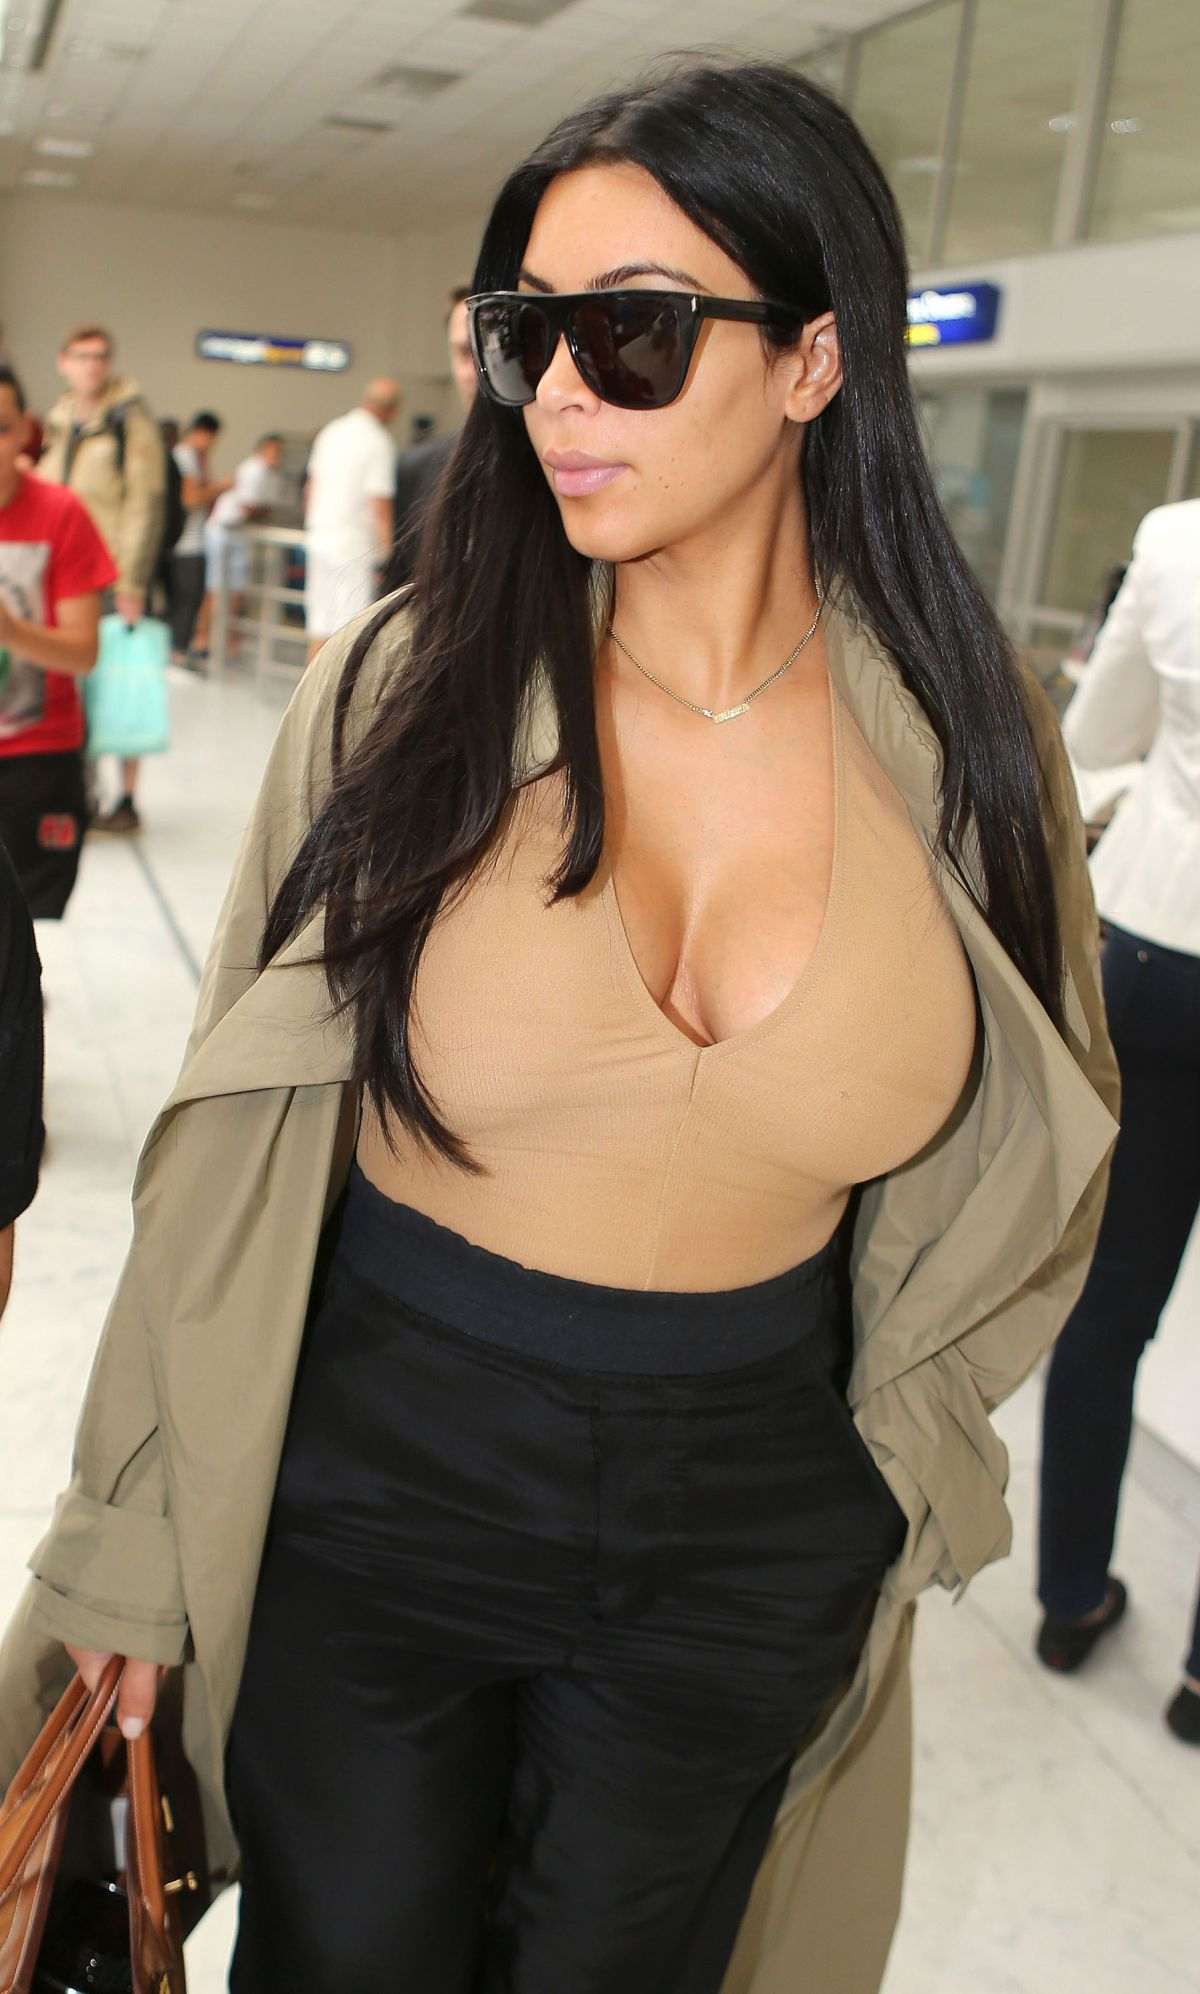 23. Kim Kardashian 23. Kim Kardashian new photo